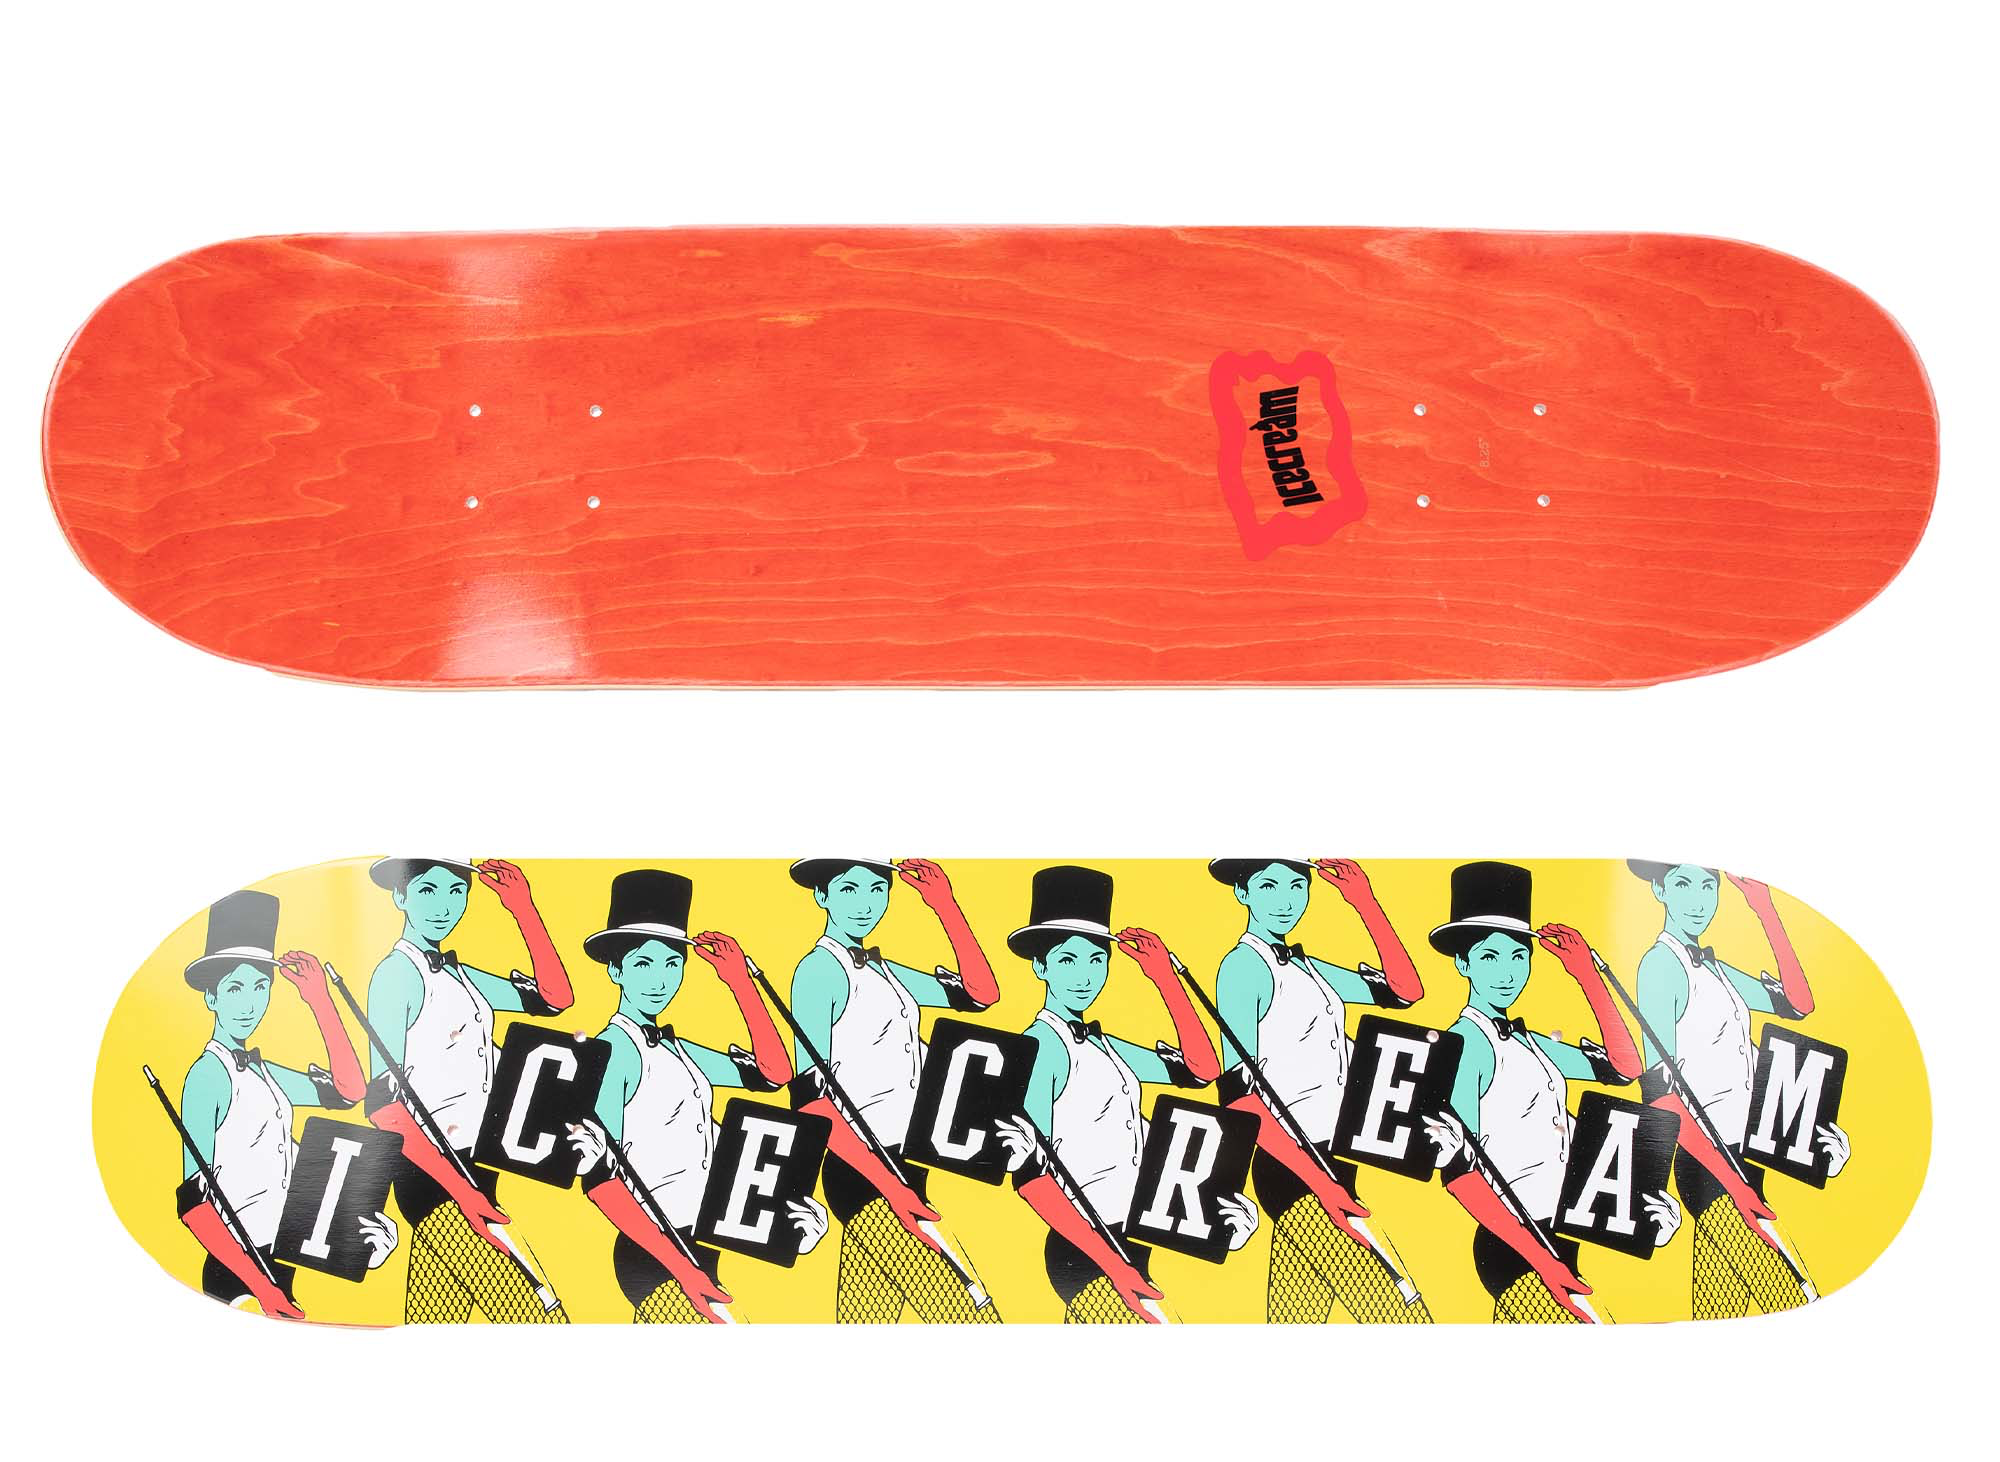 ICECREAM Top Hat Skate Deck